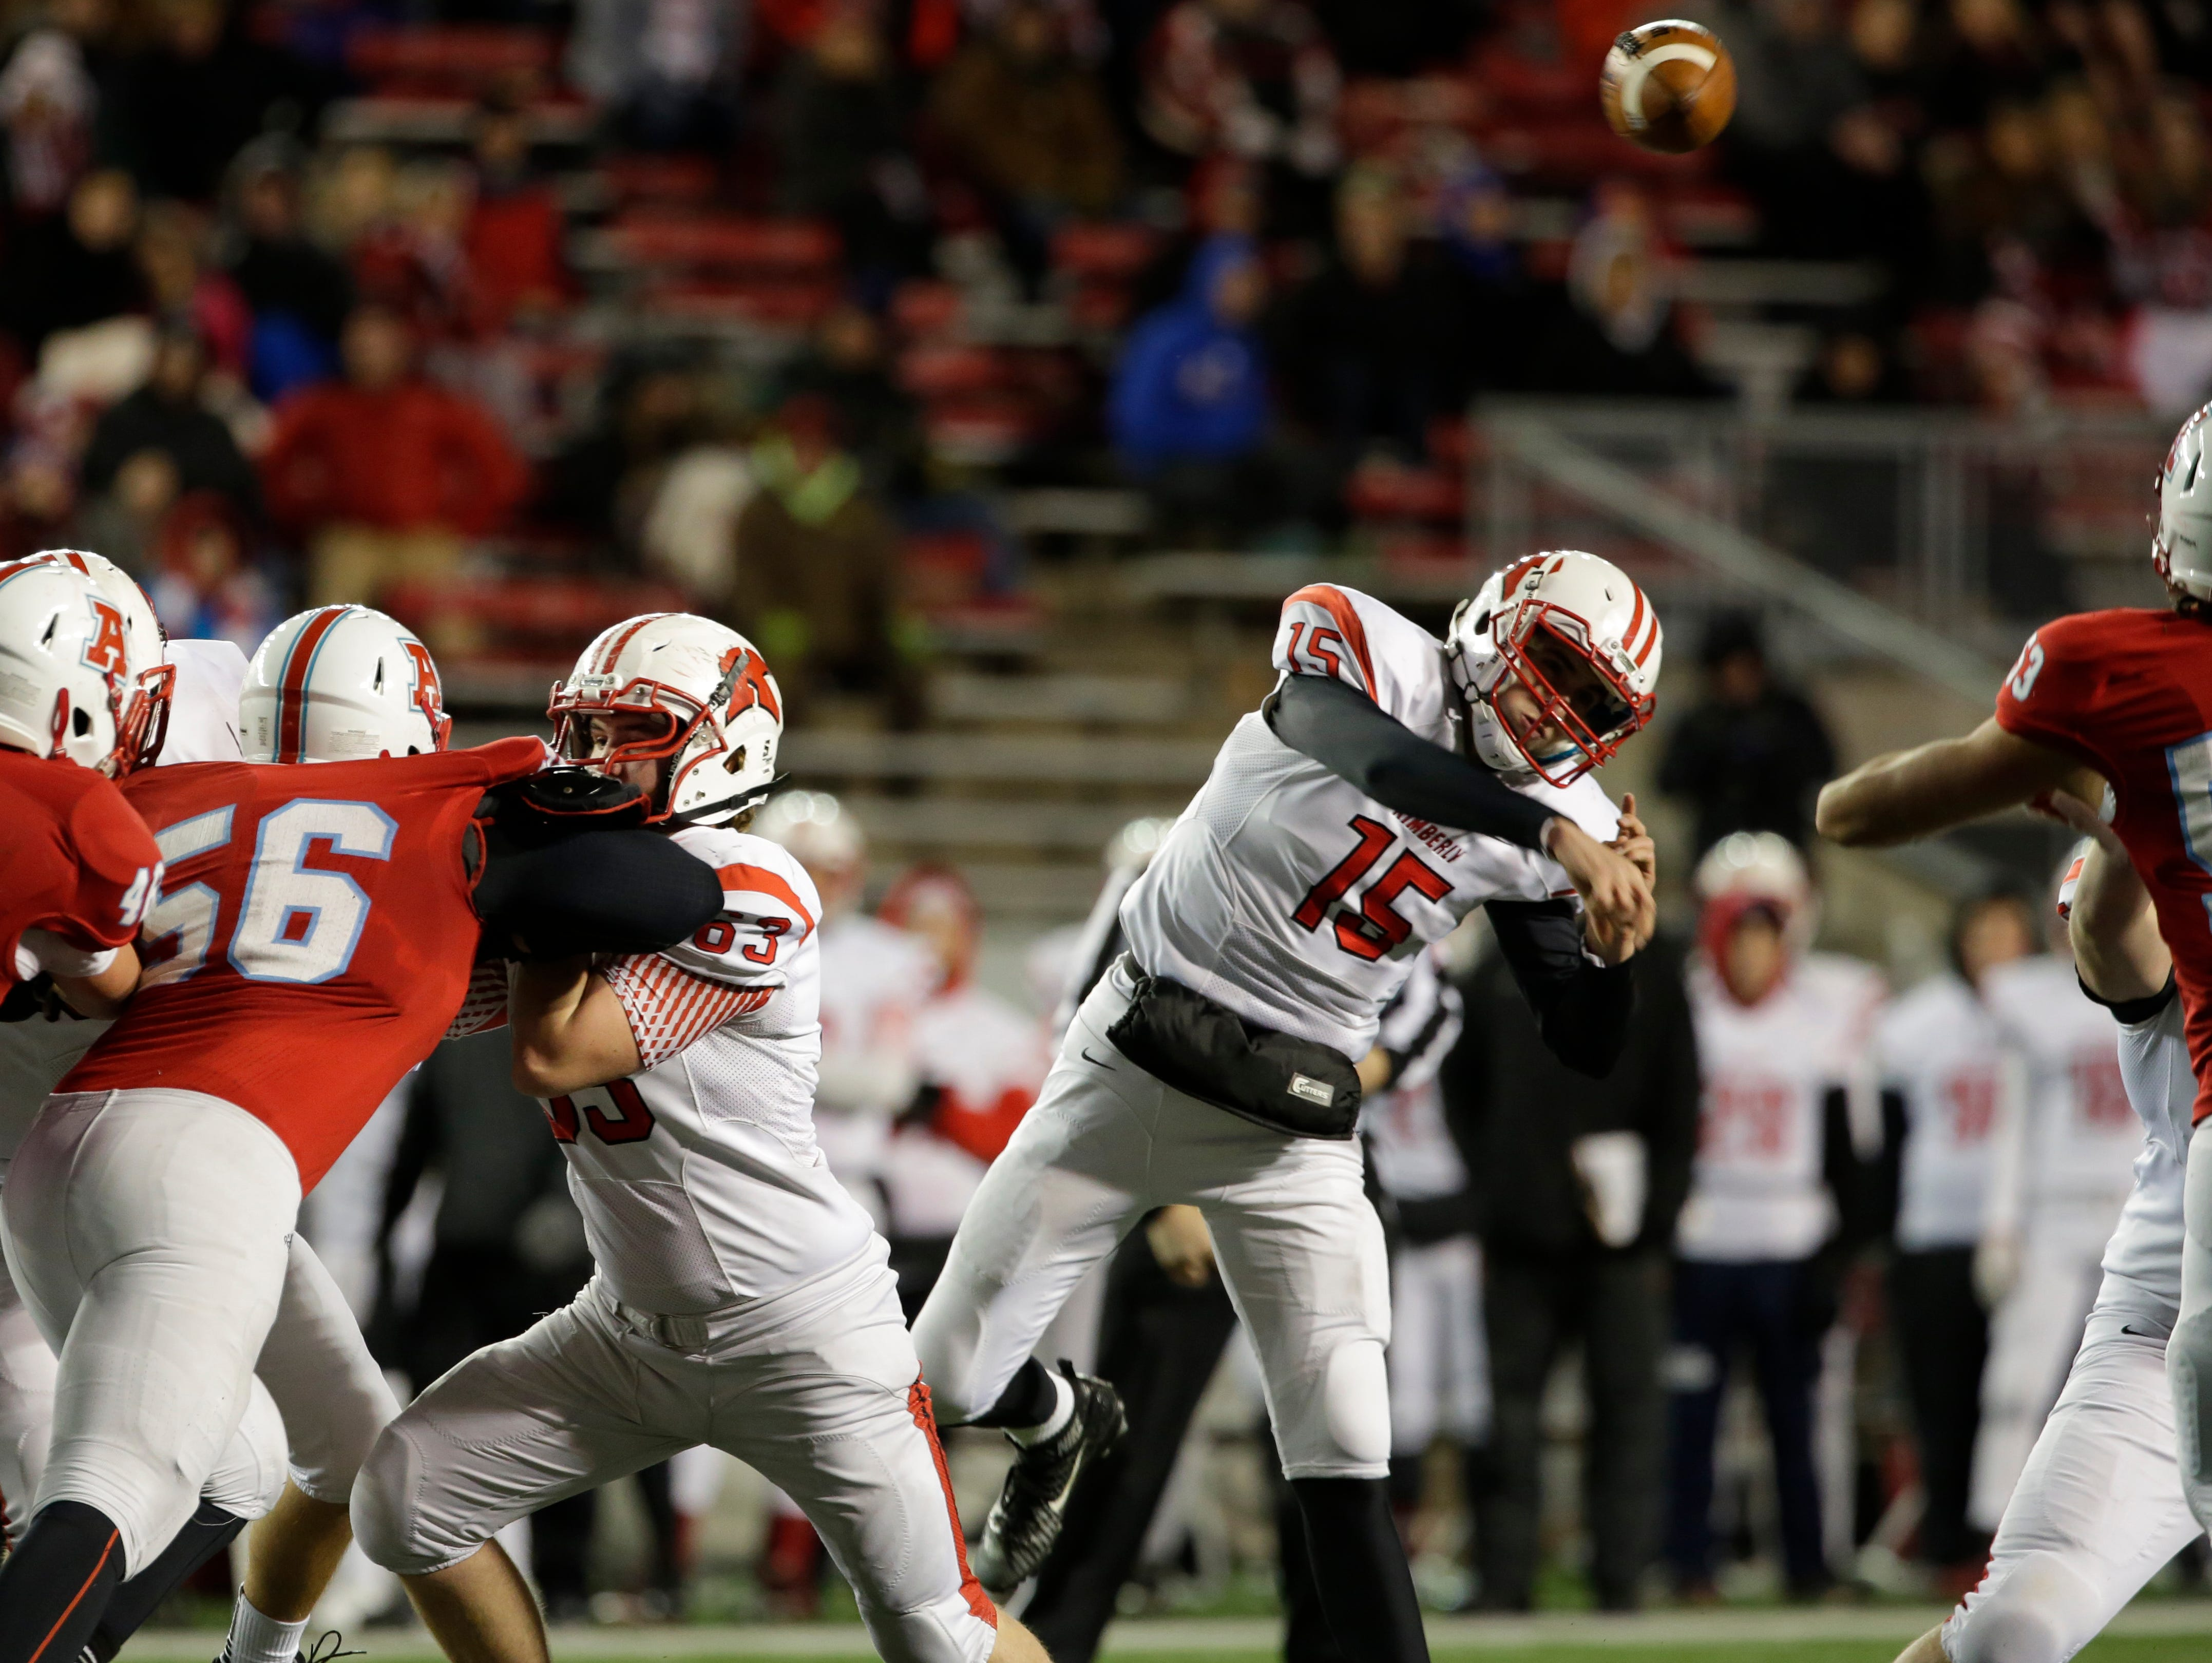 Kimberly's Danny Vanden Boom throws a pass during Friday's WIAA Division 1 state football championship game against Arrowhead at Camp Randall Stadium in Madison.